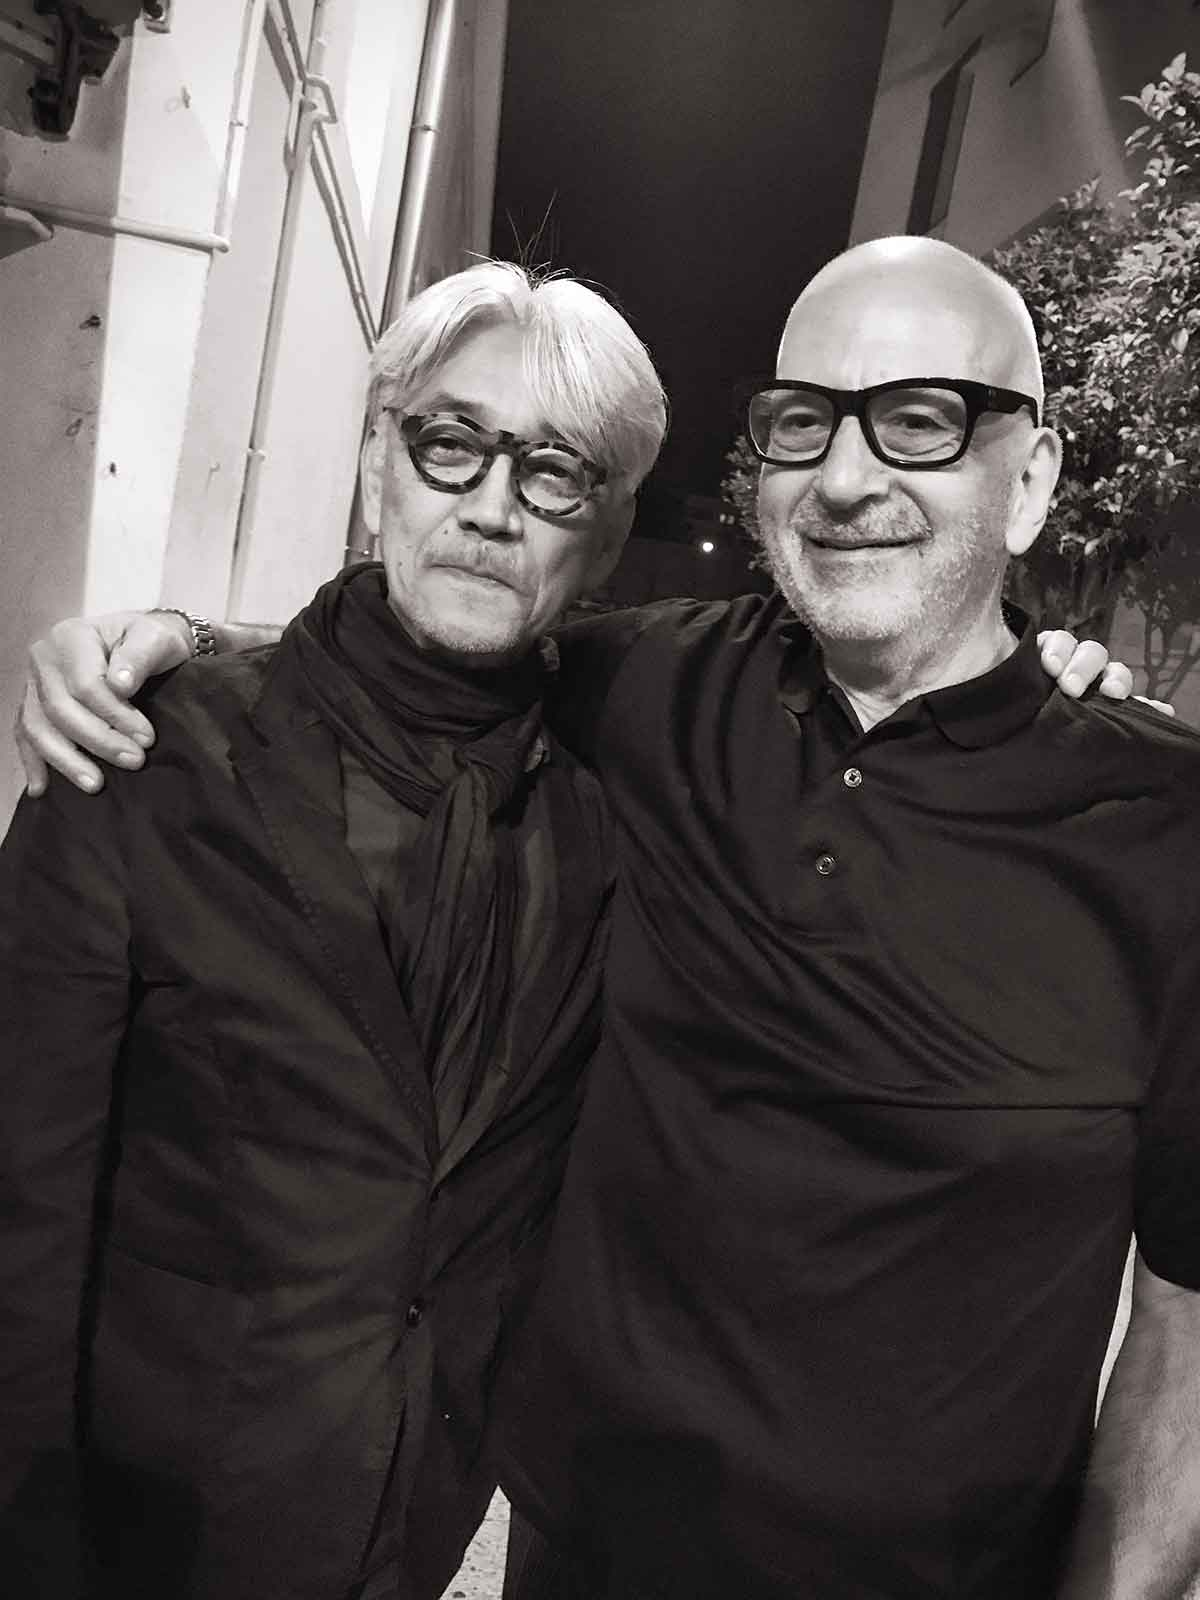 Meeting of the legends: Ryūichi Sakamoto and Daniel Miller